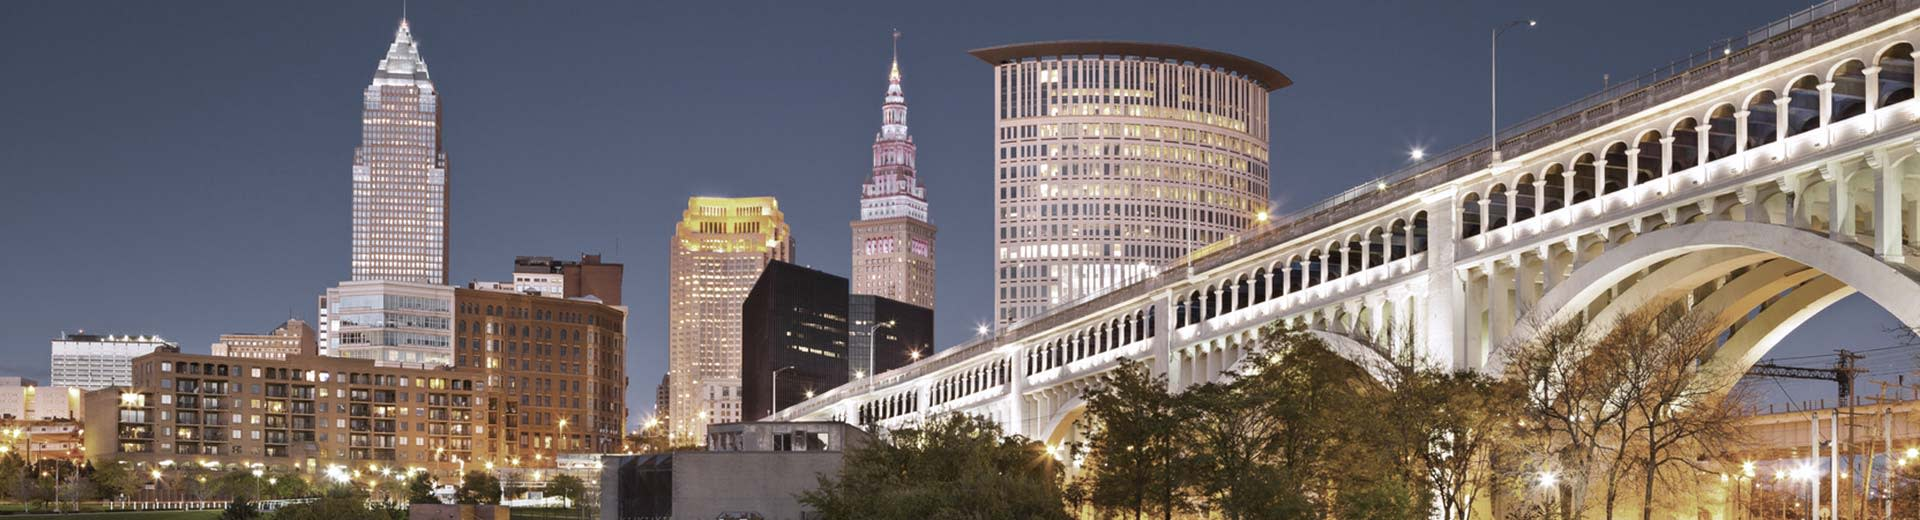 The distinctive skyline of Cleveland lights up the night sky